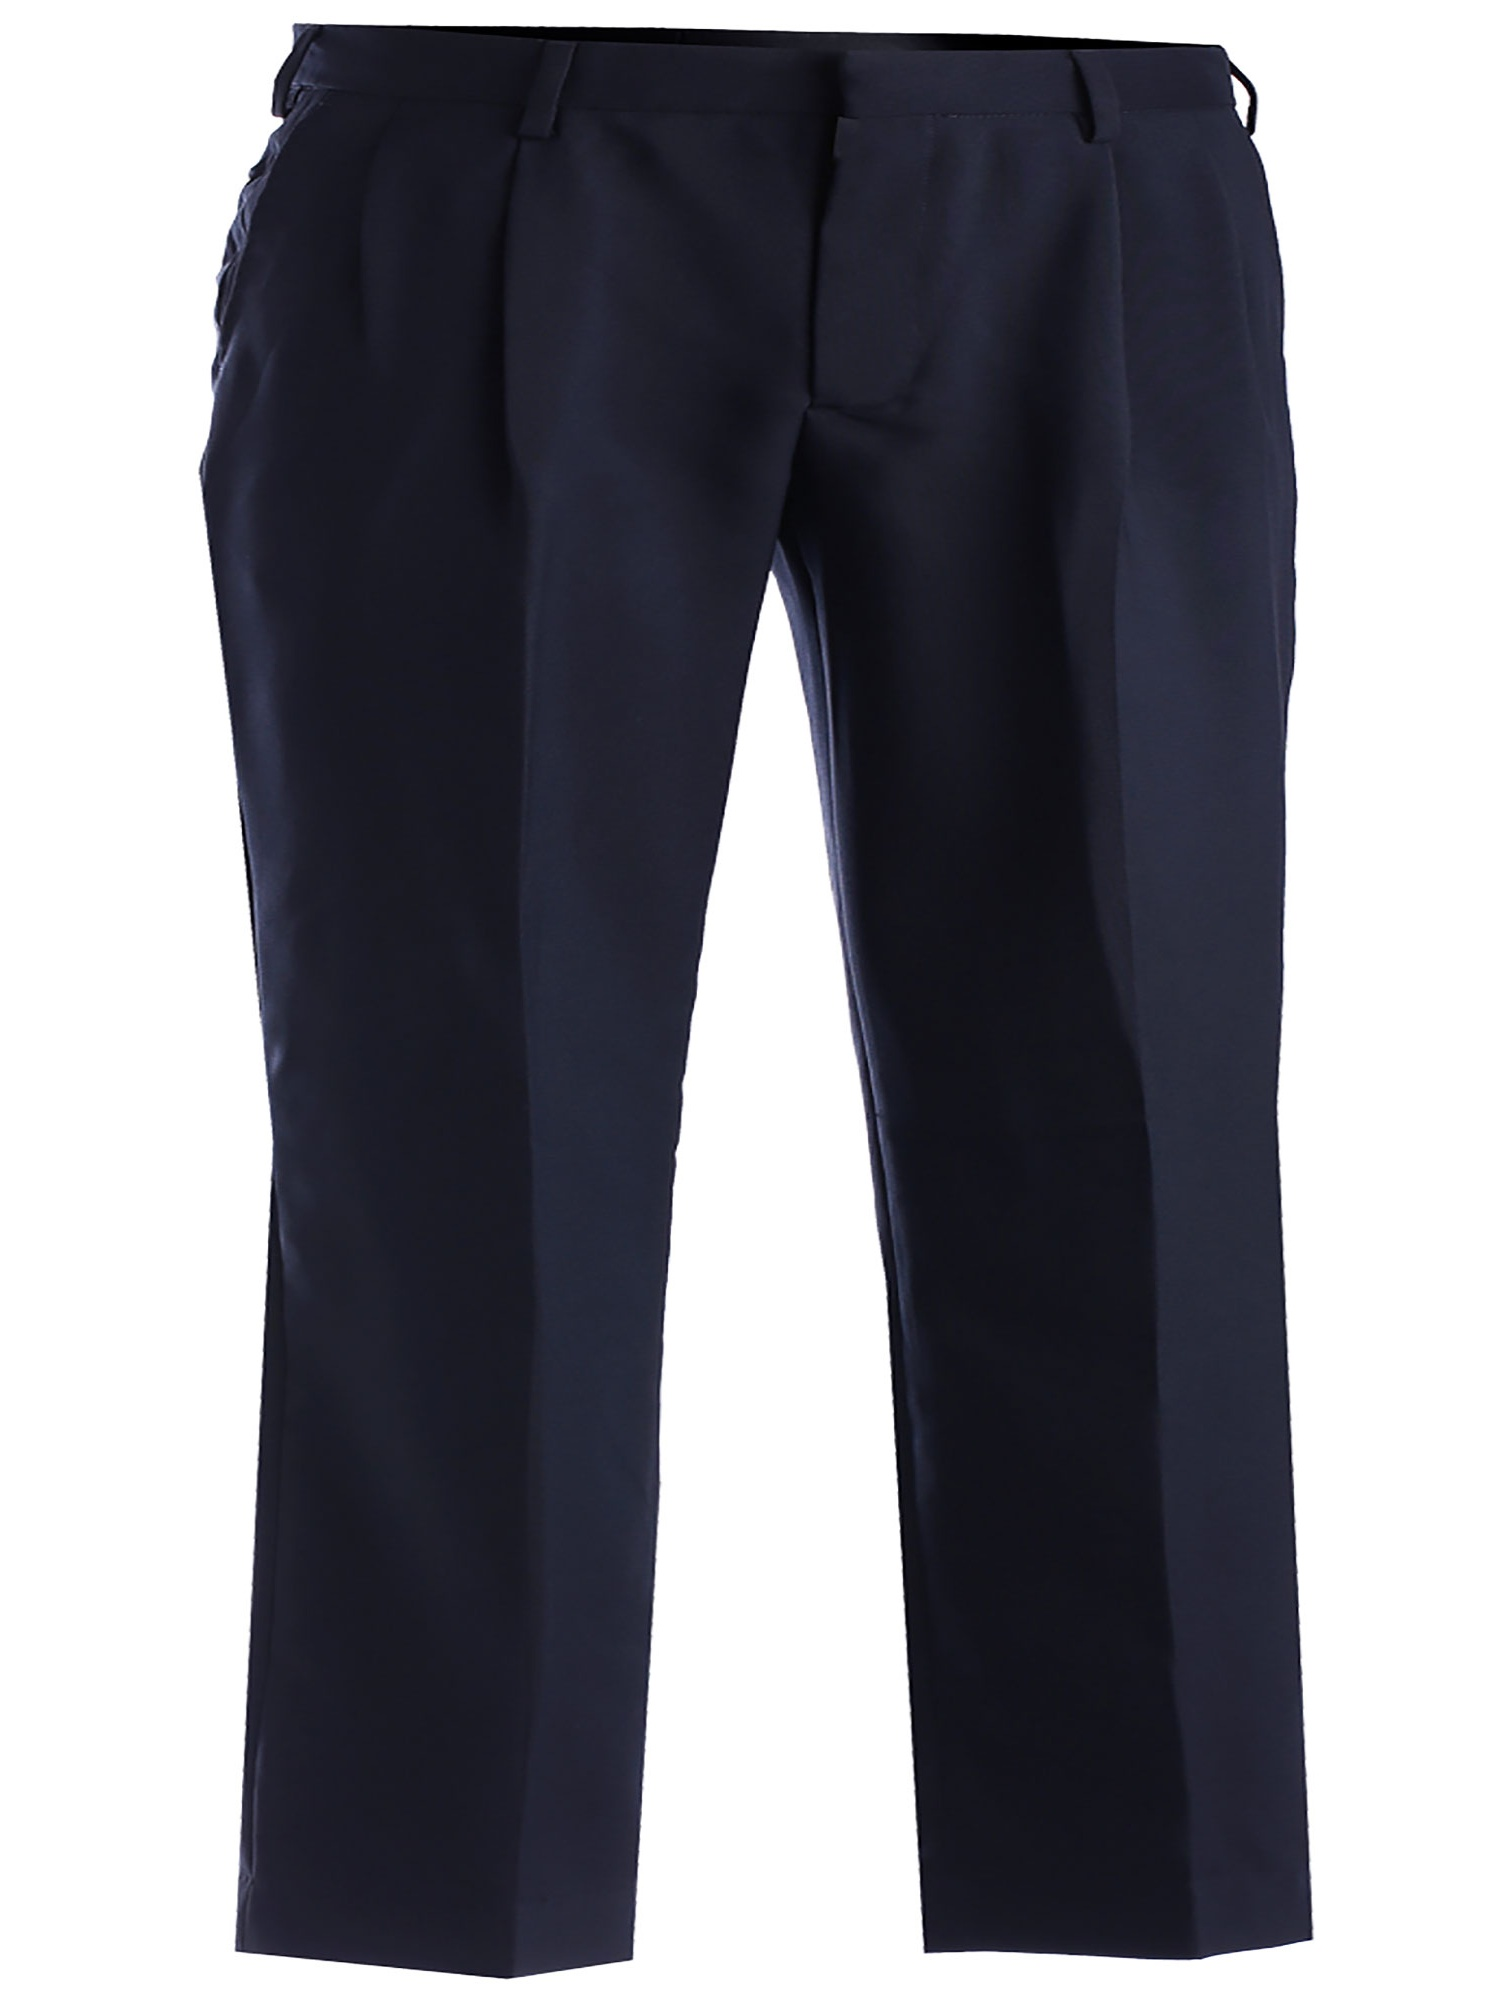 Edwards Garment Men's Wrinkle Resistant Pleated Pant, Style 2695